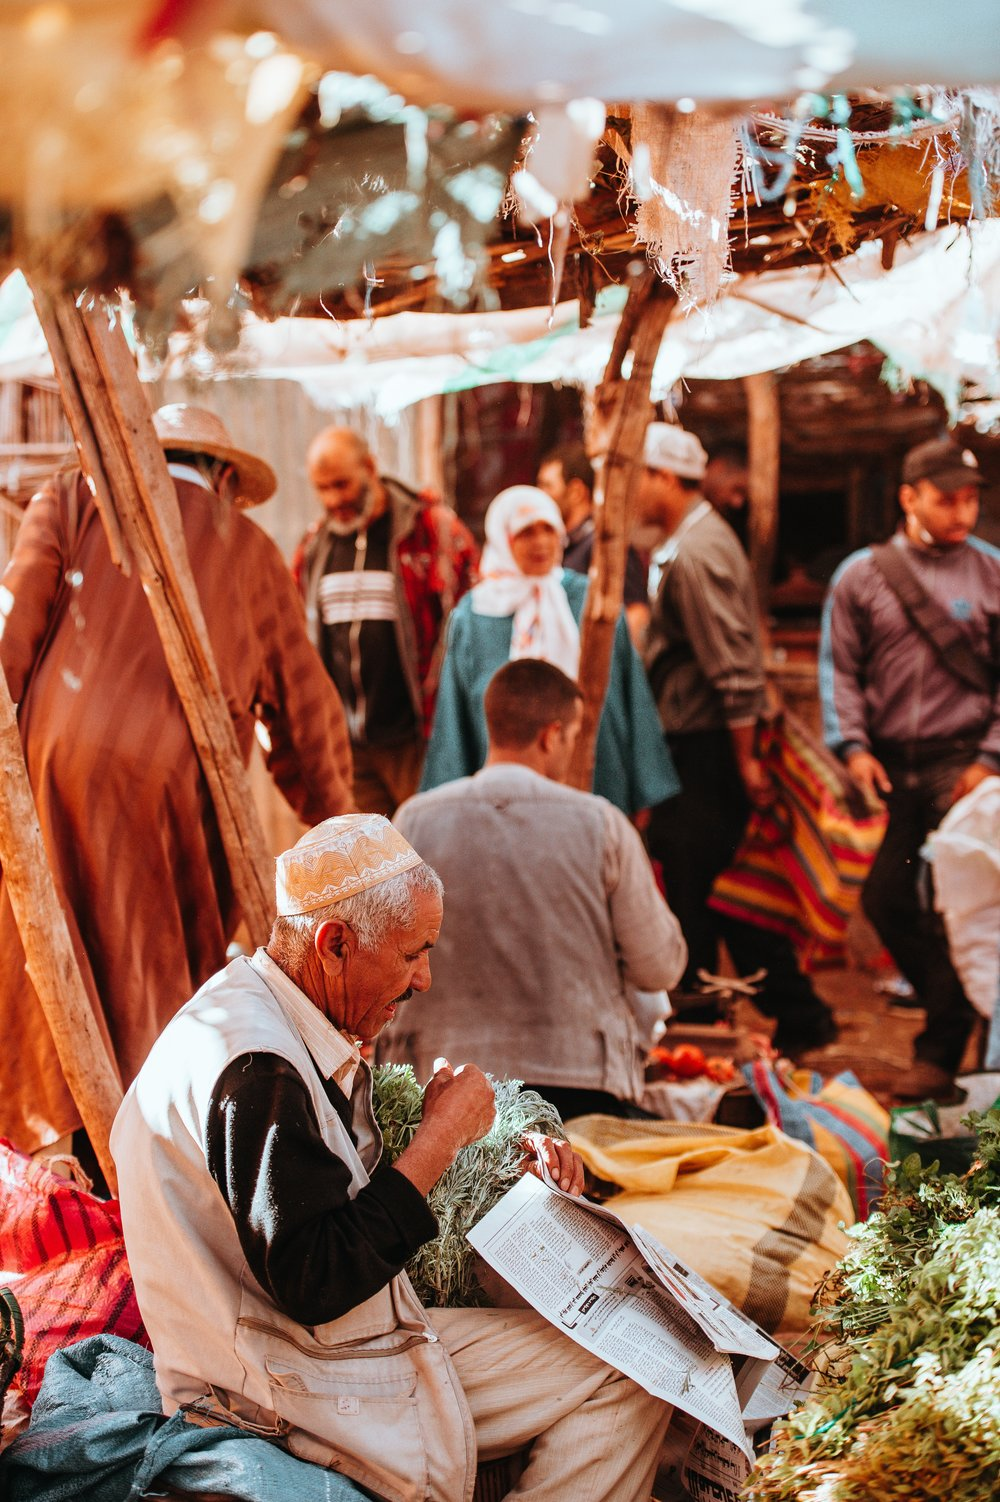 Marrakech - Photo by Annie Spratt